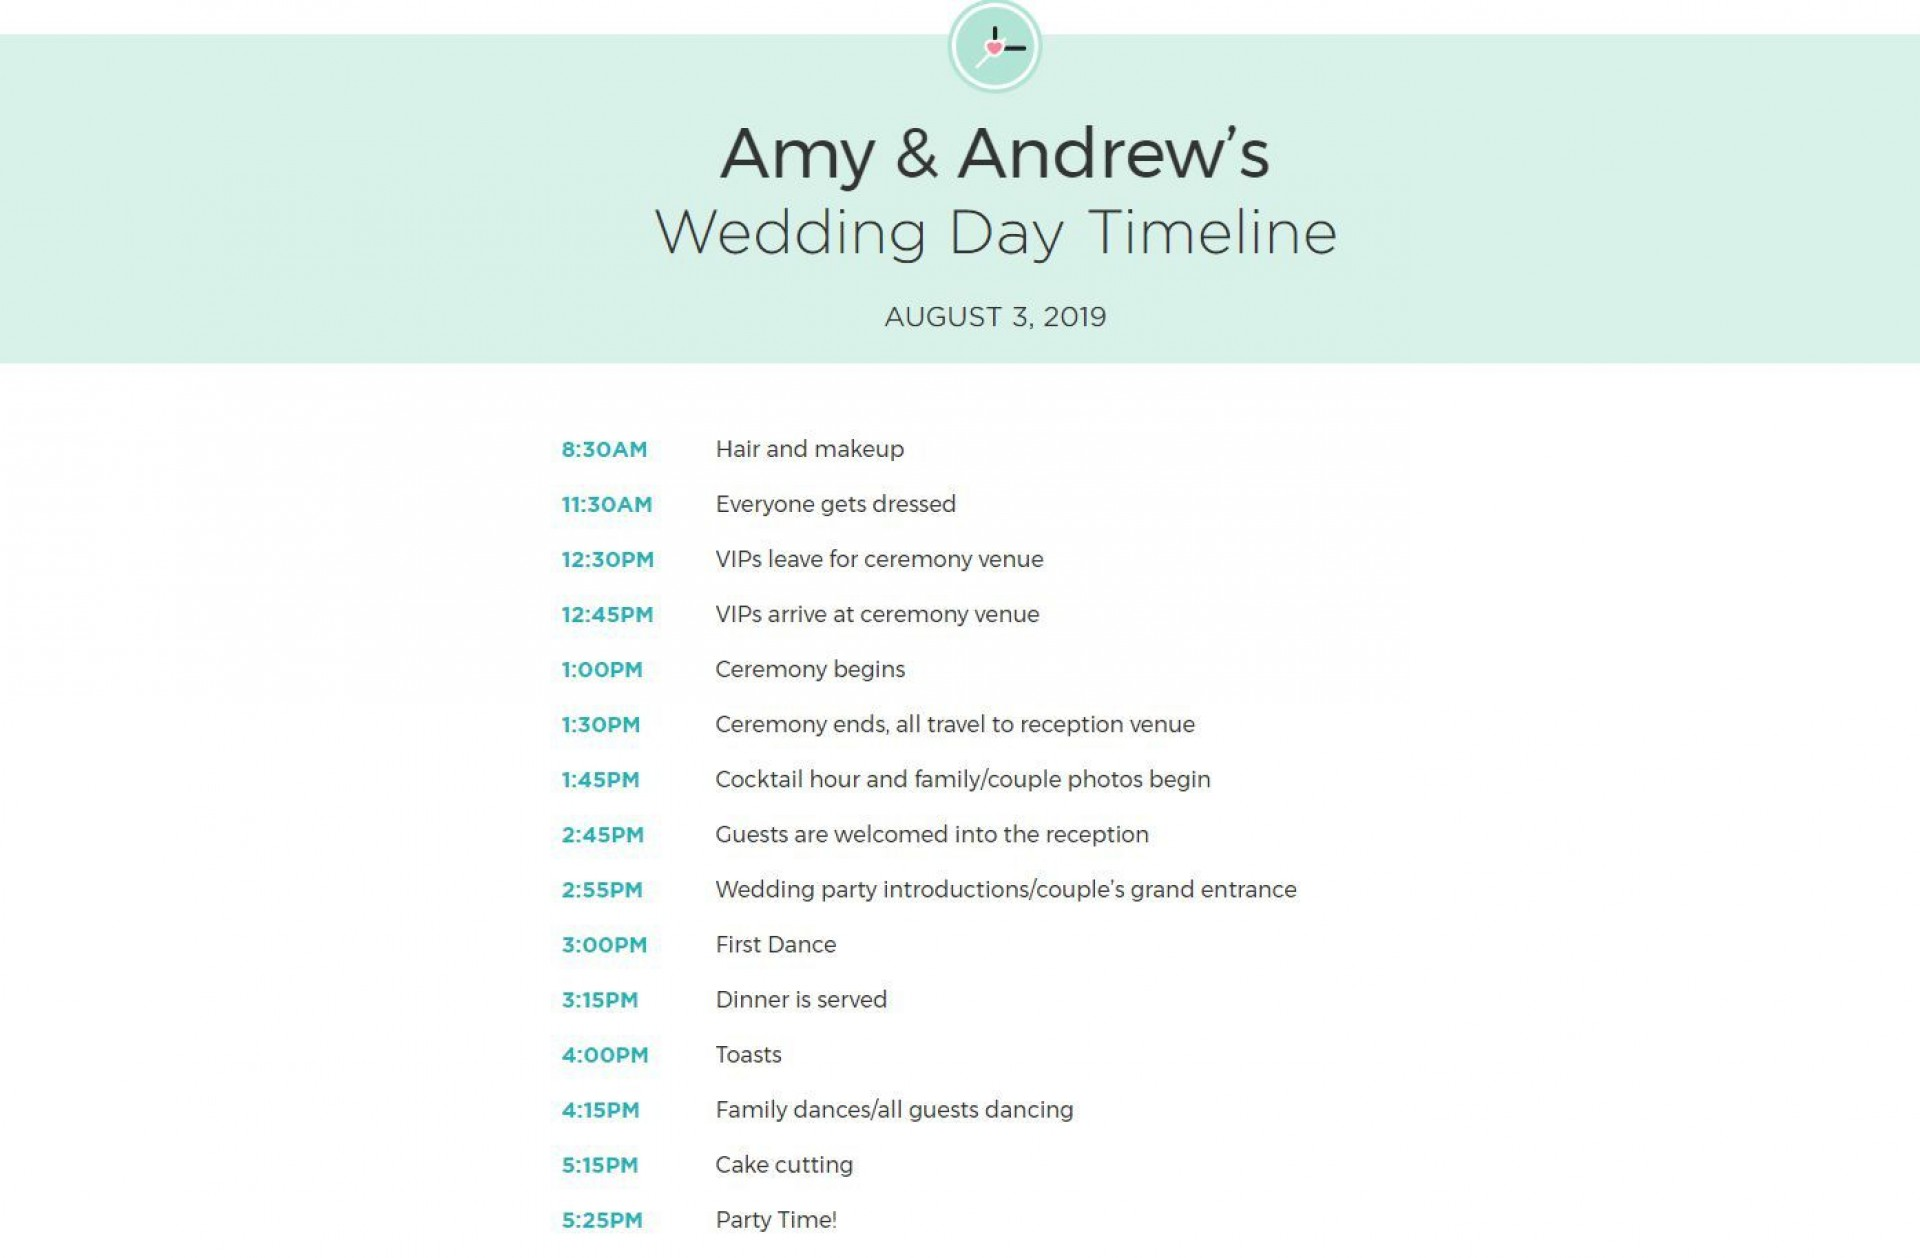 010 Impressive Wedding Timeline For Guest Template Free Photo  Download1920